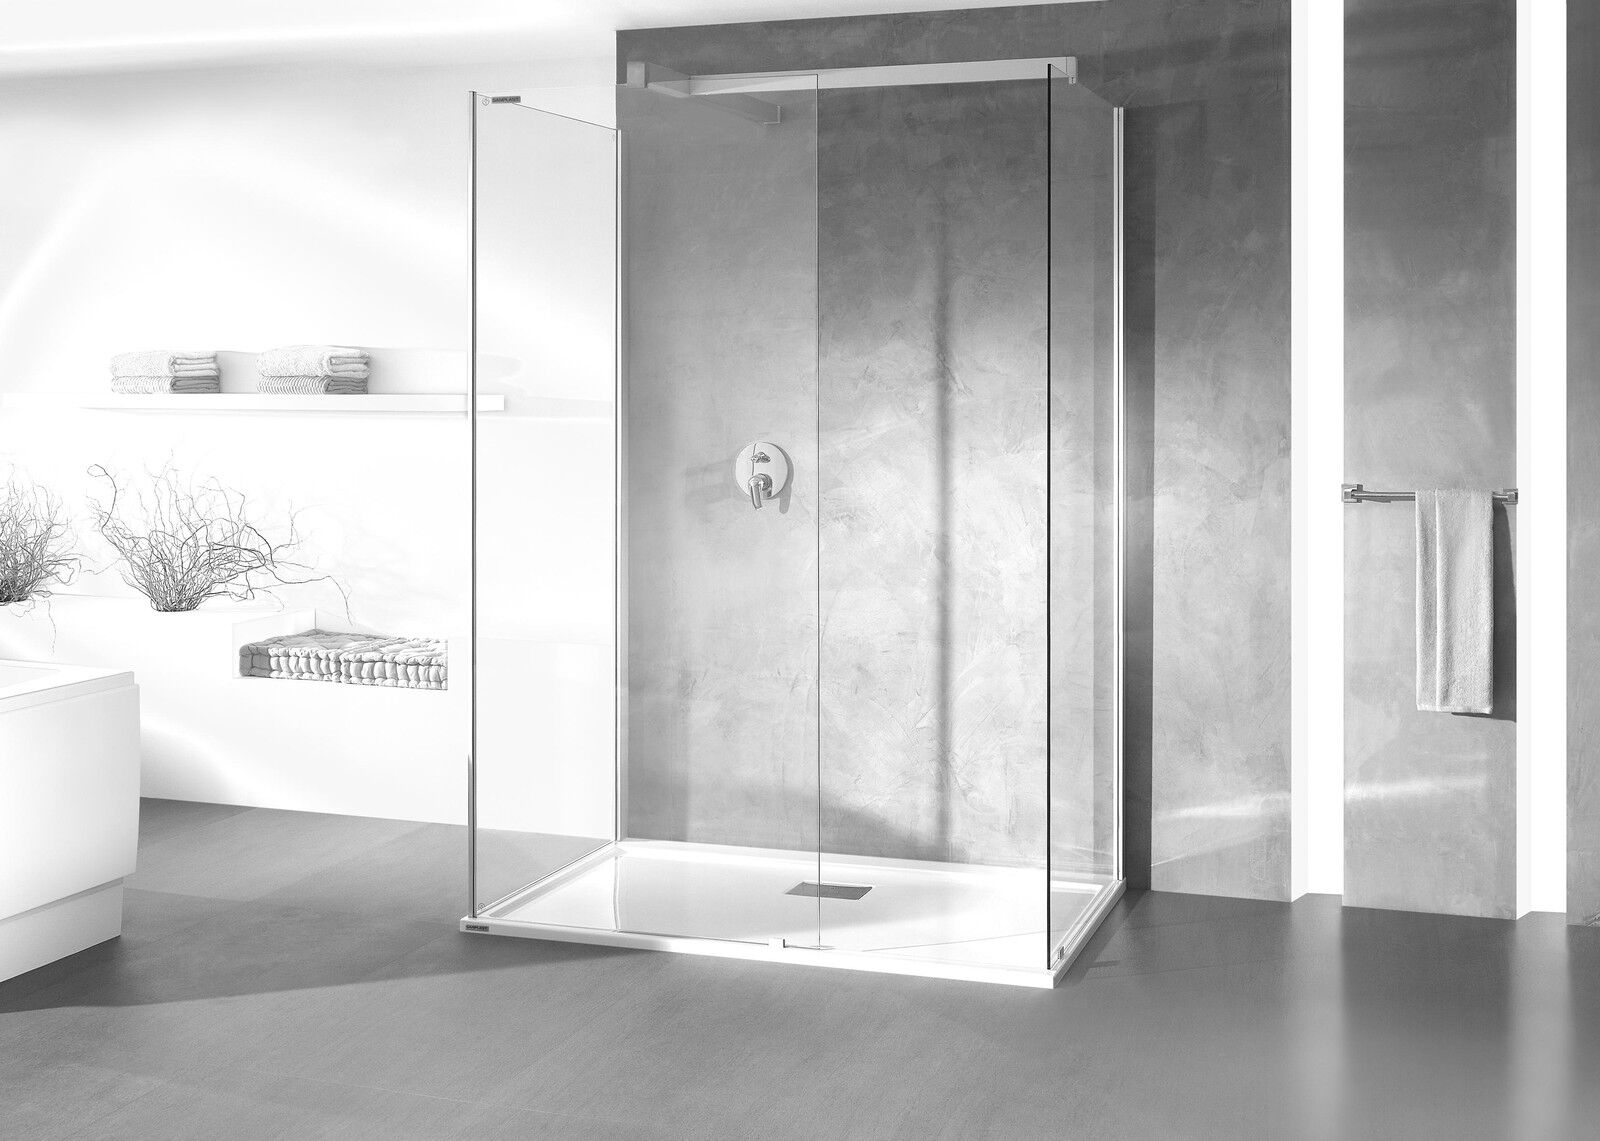 Hansgrohe + Hoesch - WALK IN Premium-Duschkombination 140x90cm Vorwandversion